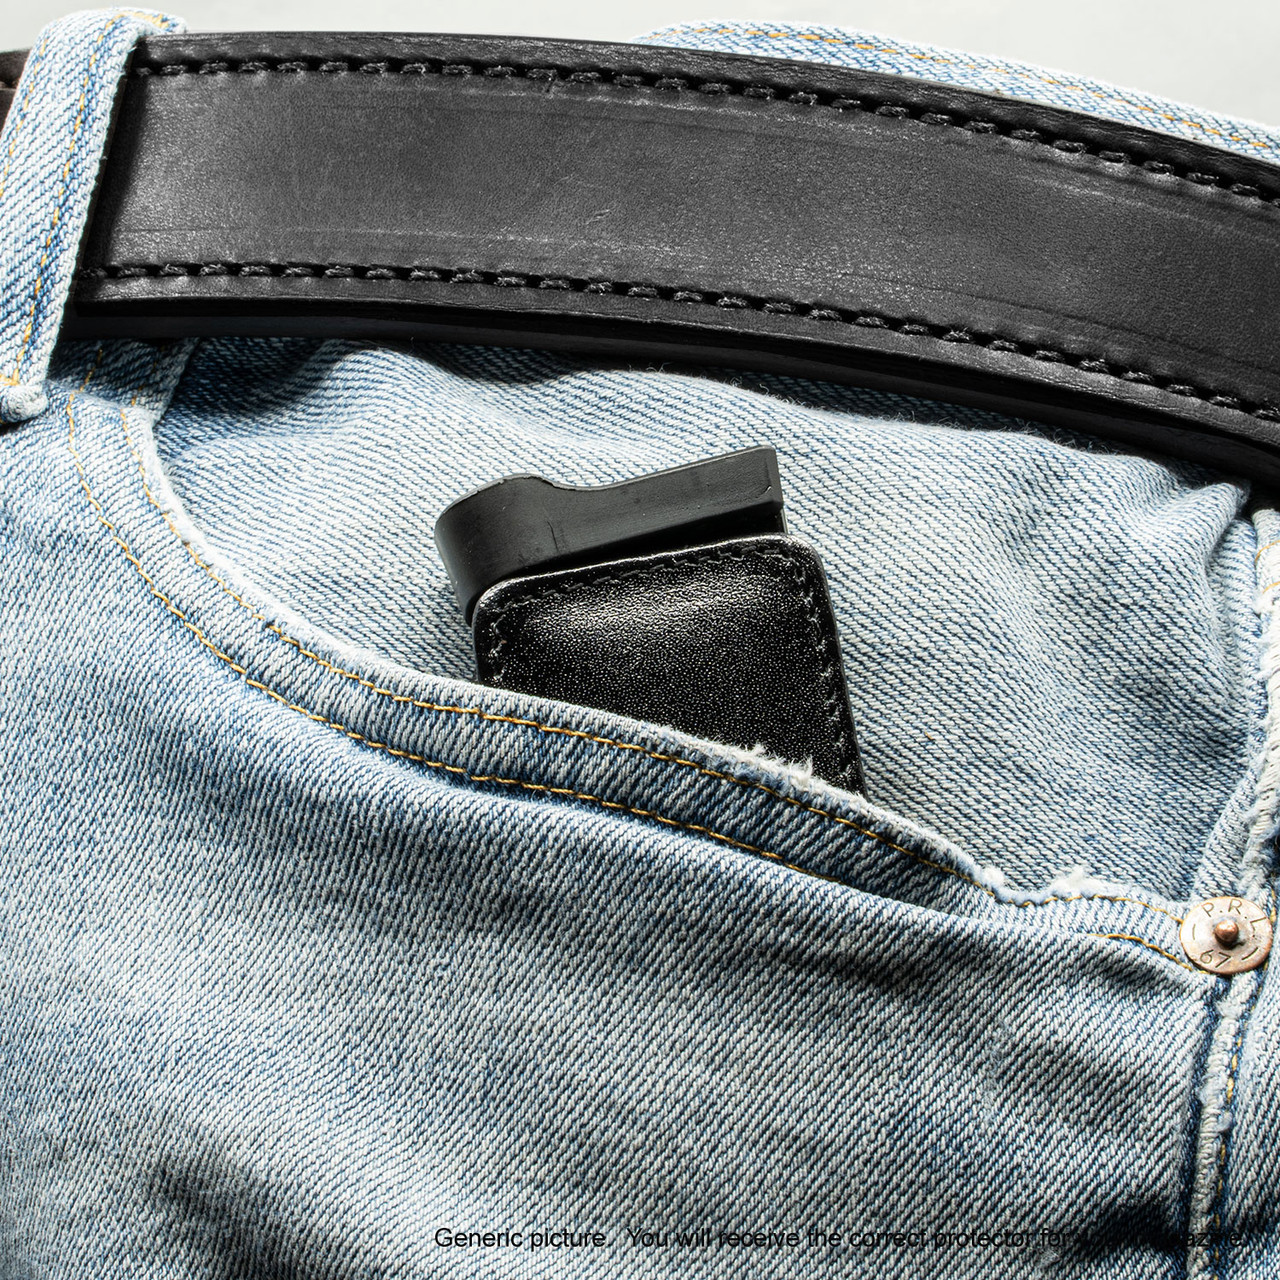 Springfield Ultra Compact Black Leather Magazine Pocket Protector